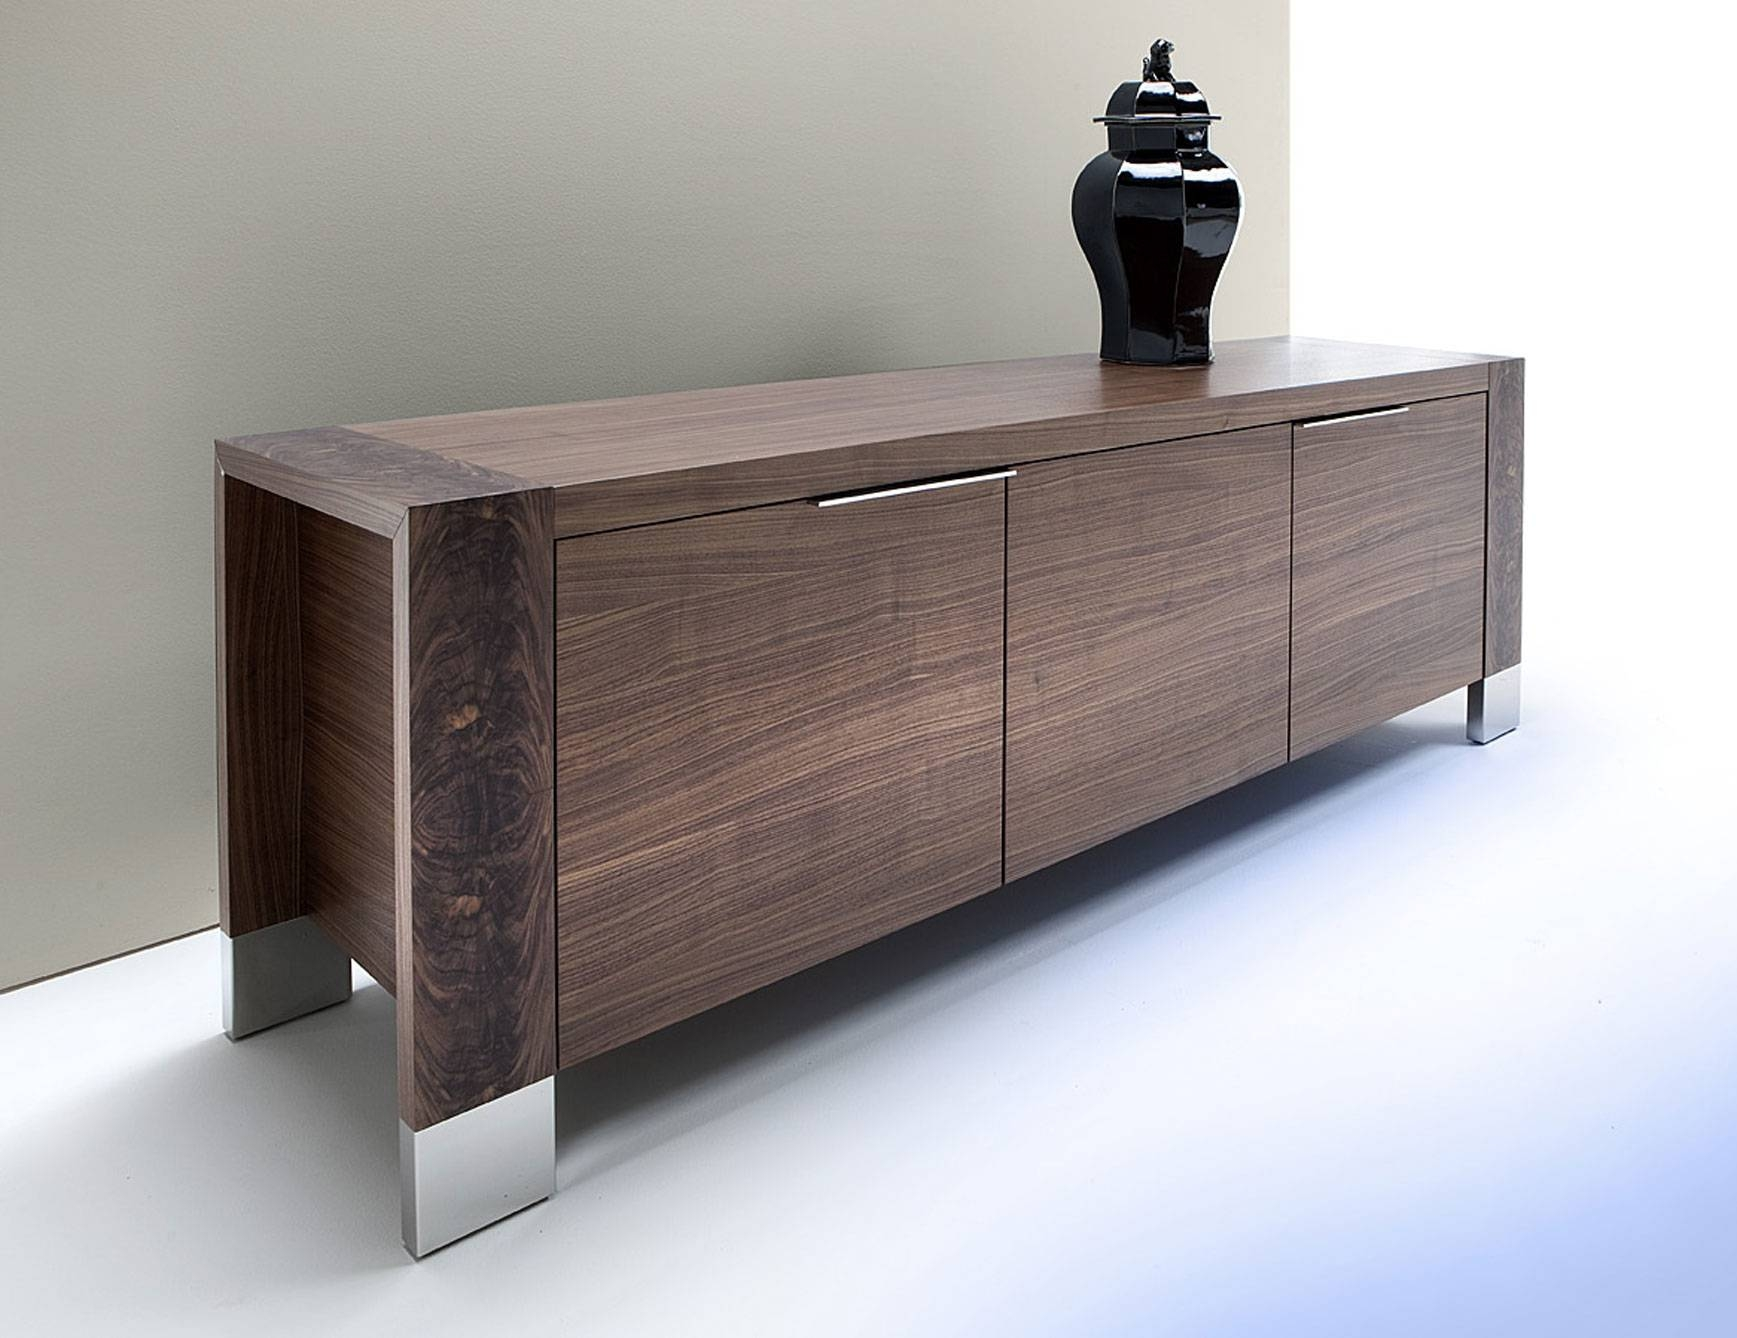 Sideboards: Amusing Buffet Storage Credenza Sideboards Credenzas Regarding Modern Sideboards Furniture (View 3 of 20)